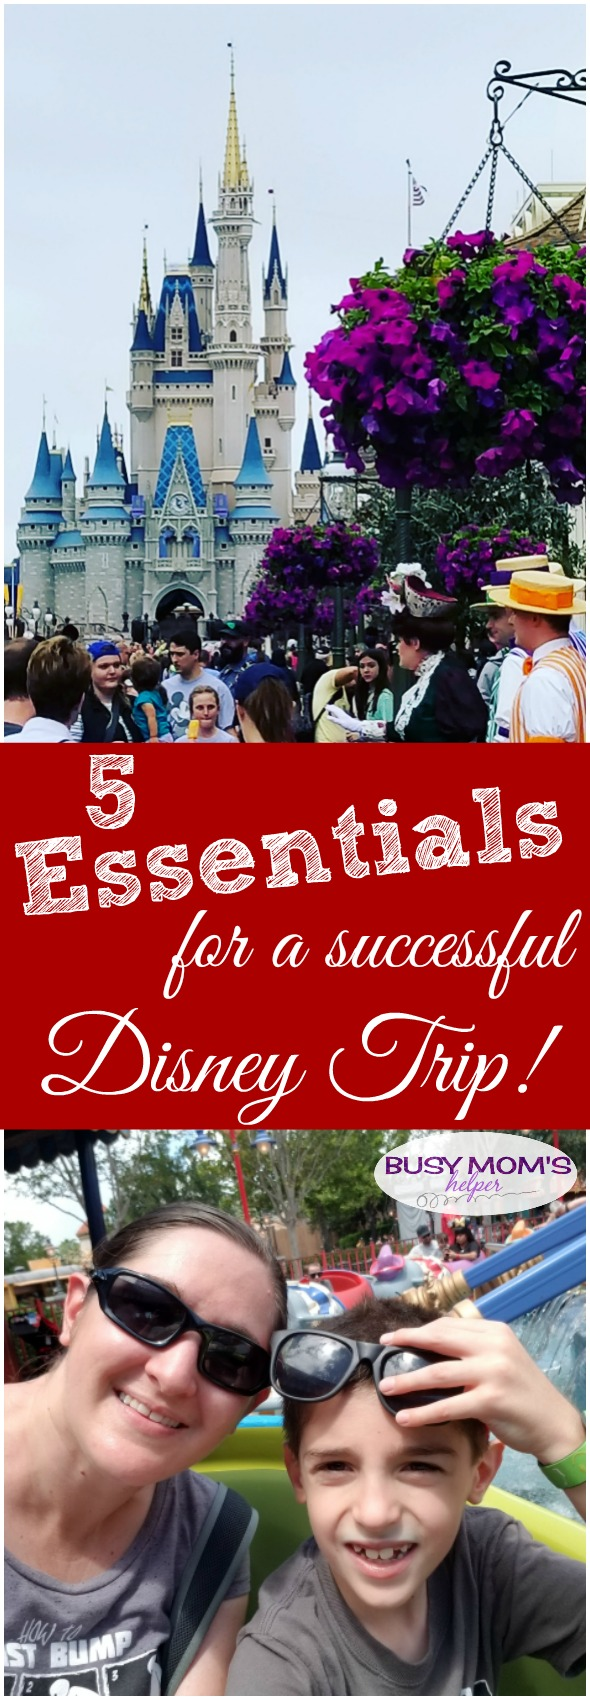 Essentials to Pack for a Disney Trip - a successful Disney trip! #disney #waltdisneyworld #disneytips #disneyparks #travel